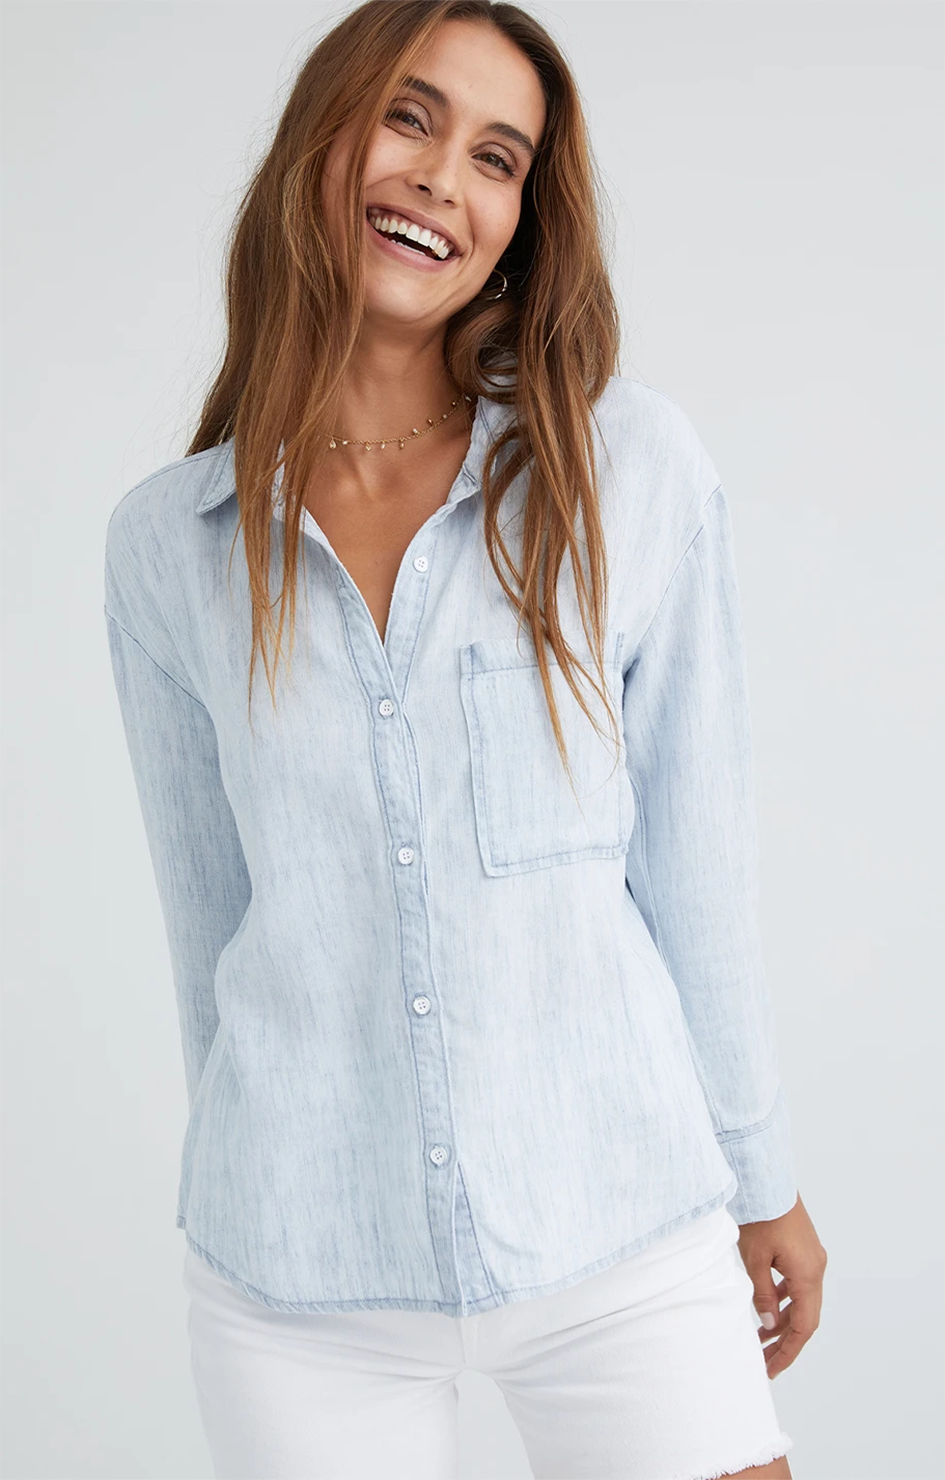 Pleat Back Pocket Shirt - Skywash